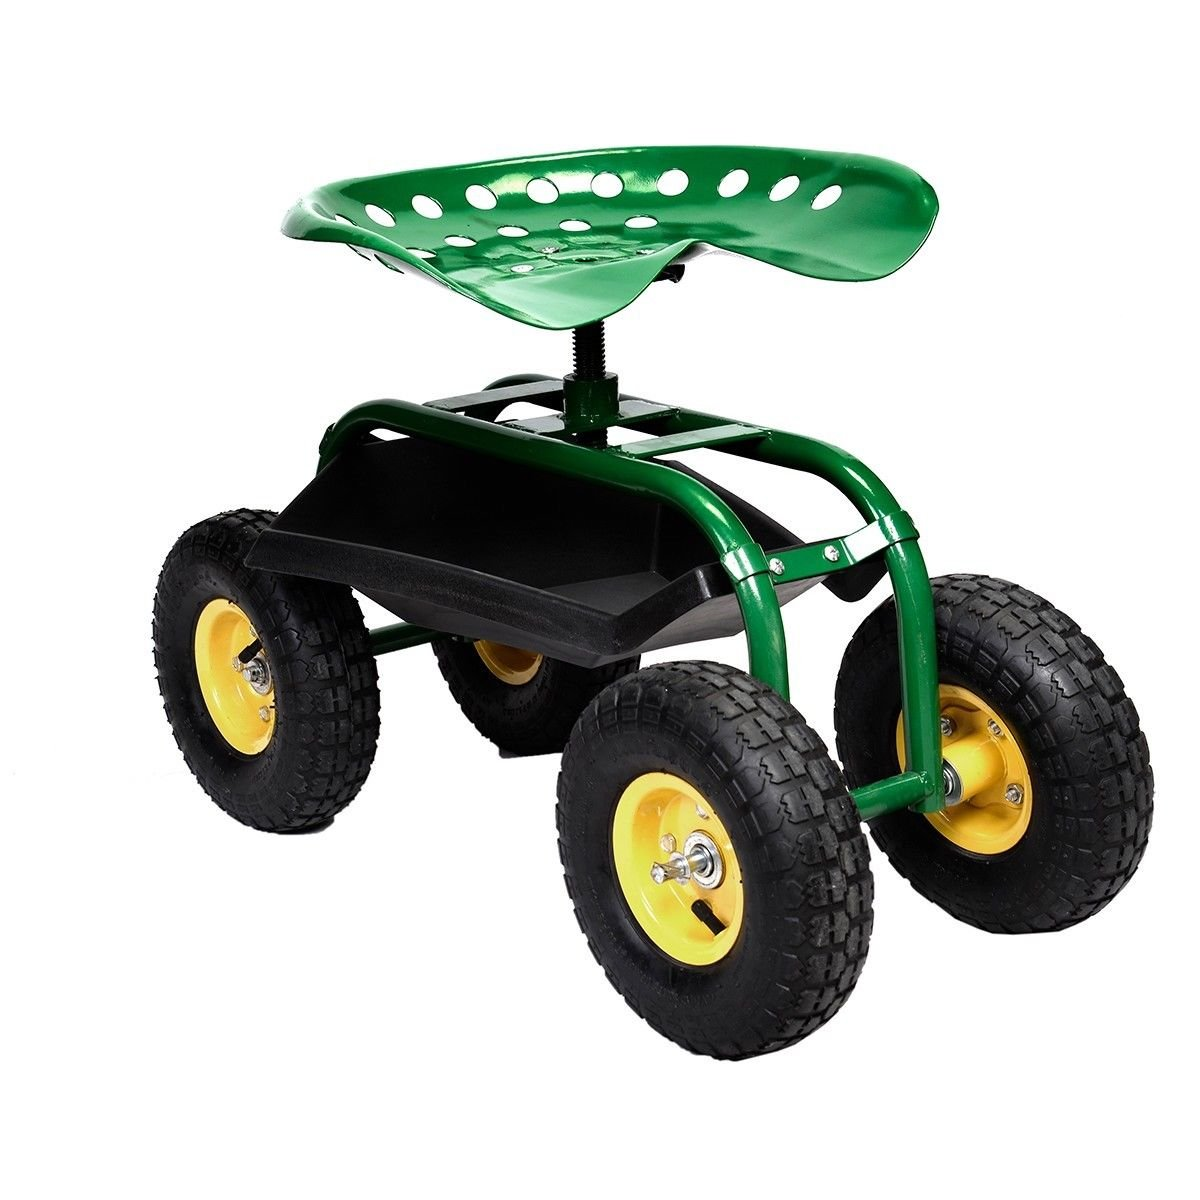 Comie Rolling Garden Cart Work Seat With tool Tray Heavy Duty Gardening Planting Green New